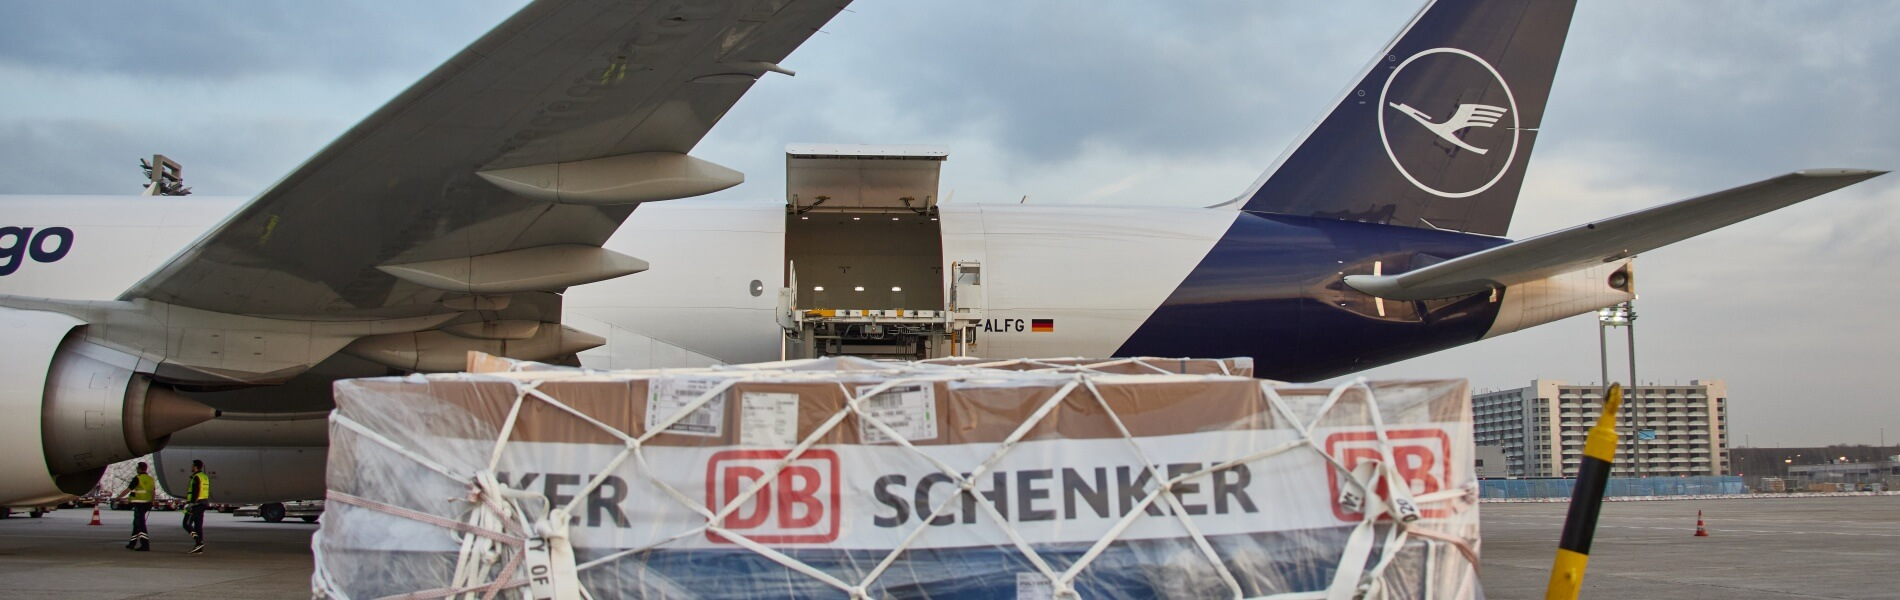 Frankfurt-Shanghai: DB Schenker flies CO2-neutral on a regular basis